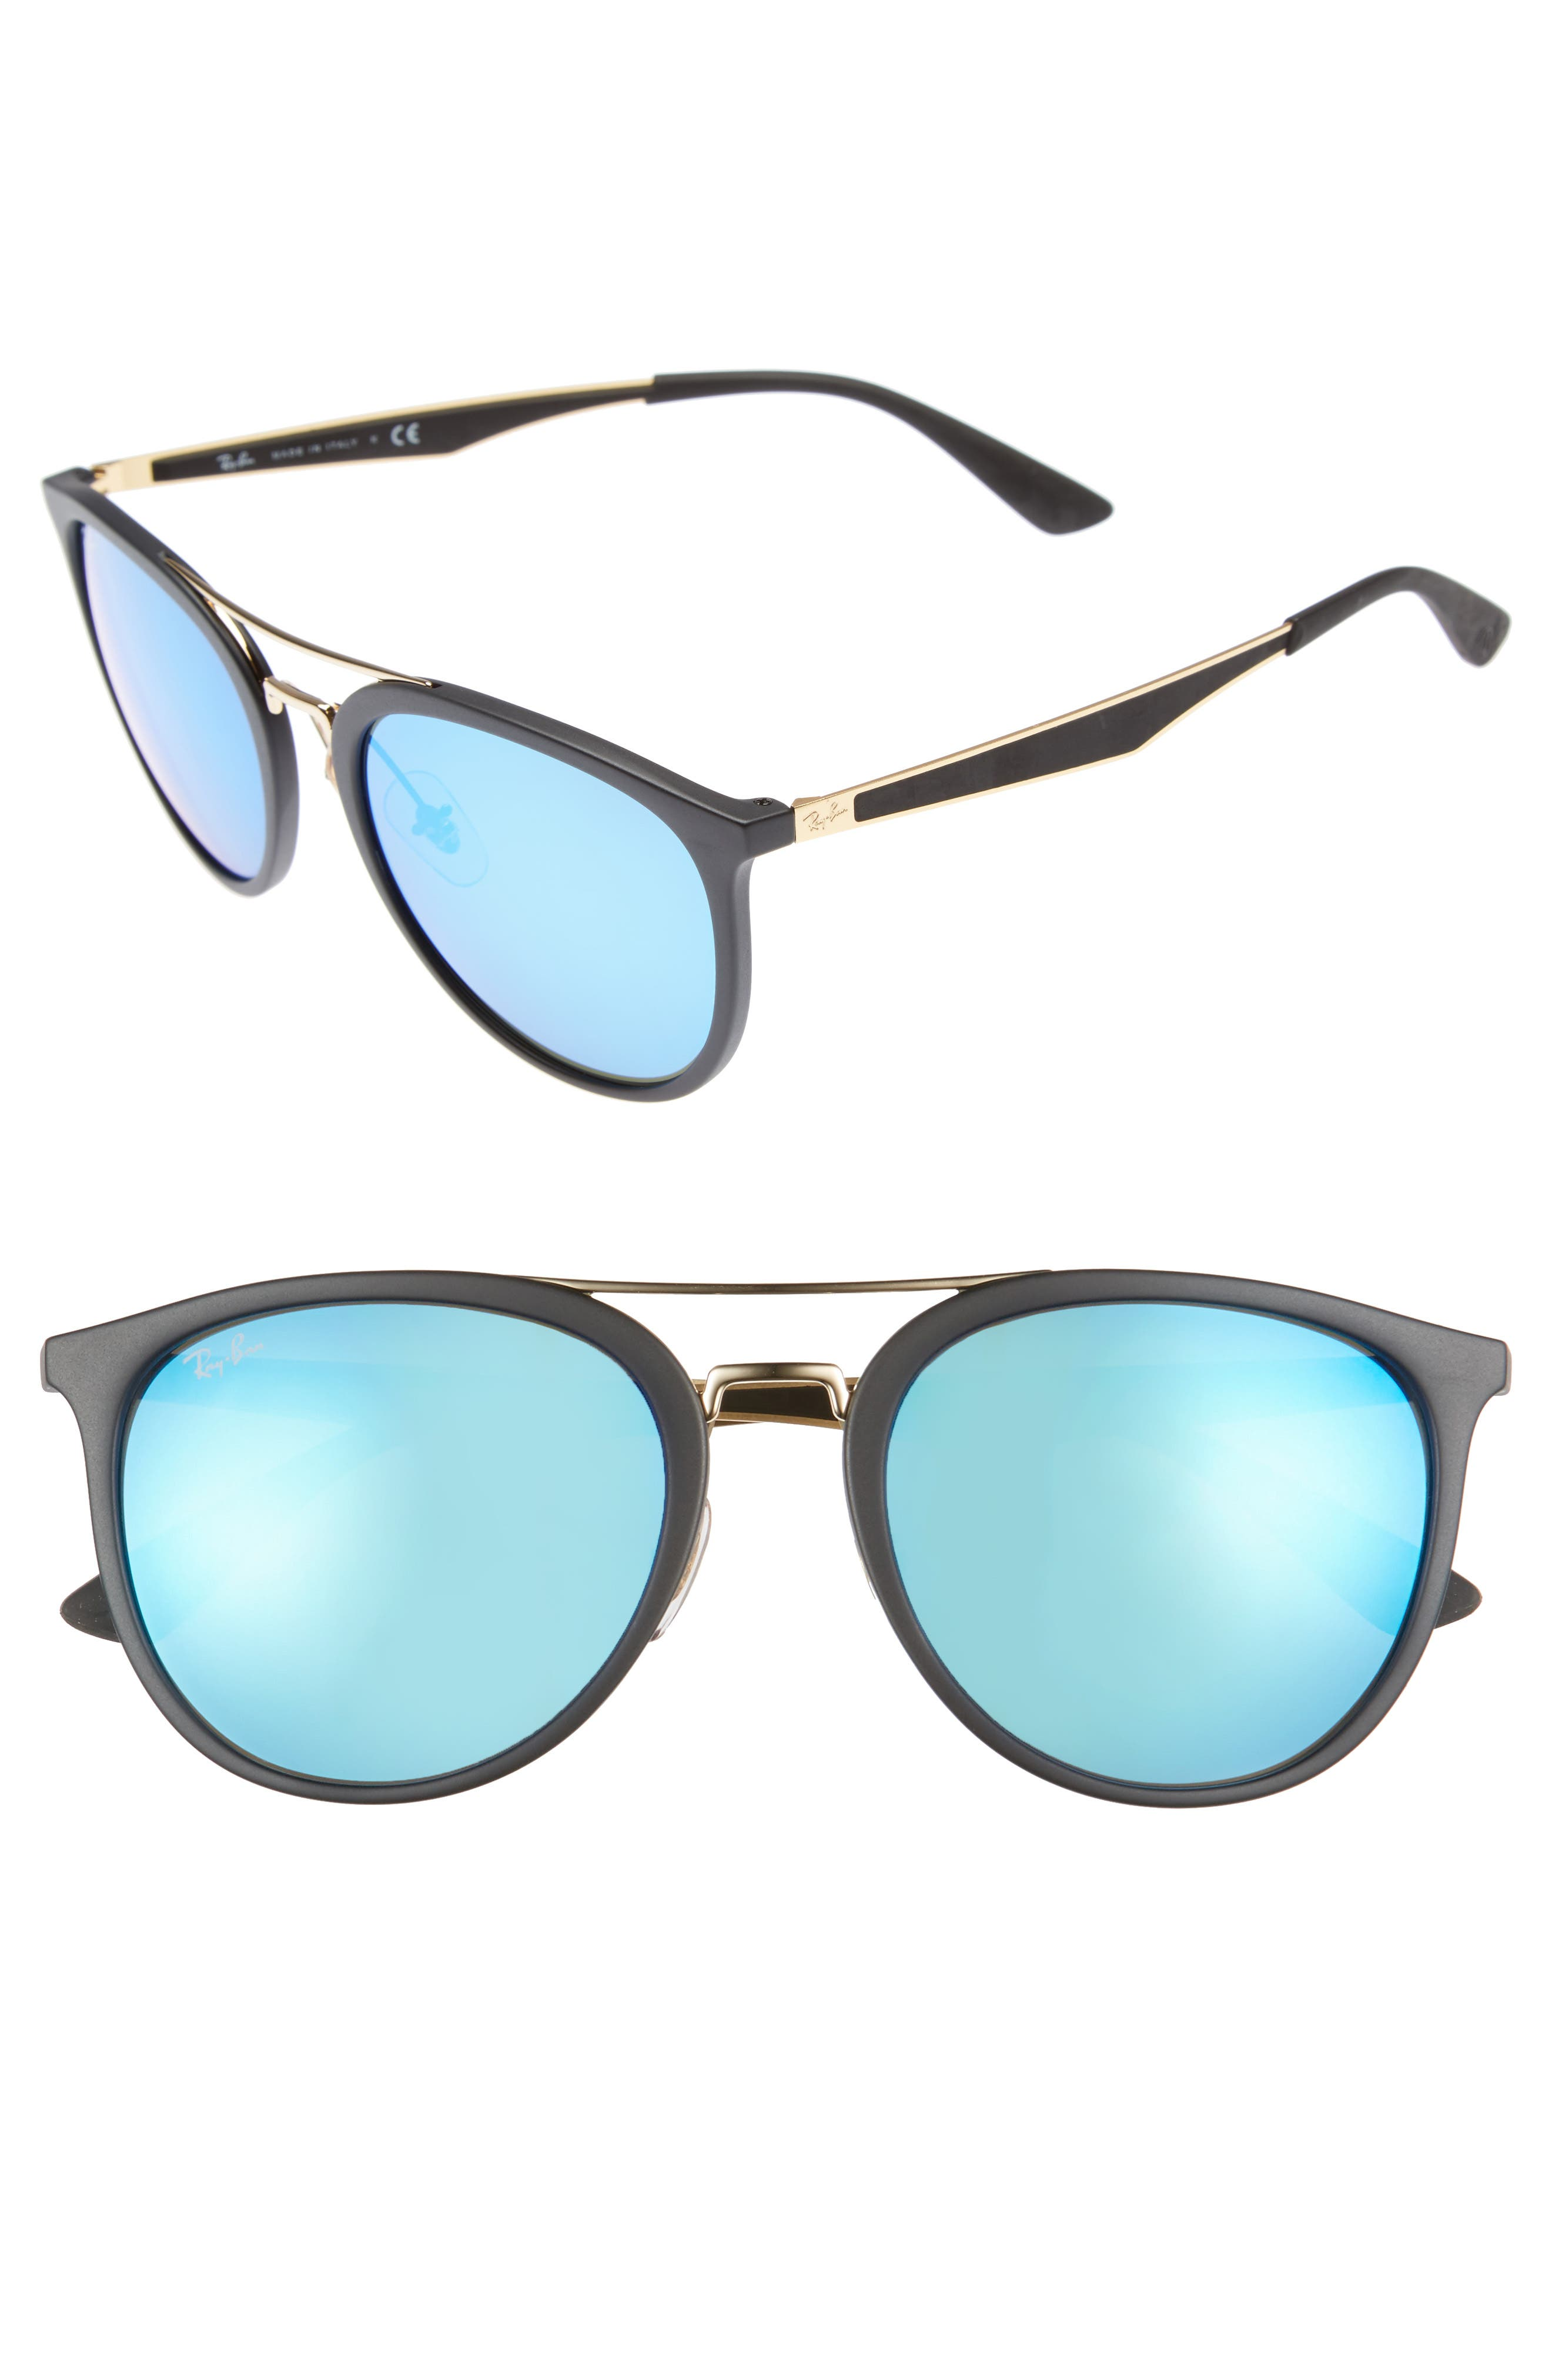 55mm Retro Sunglasses,                         Main,                         color,